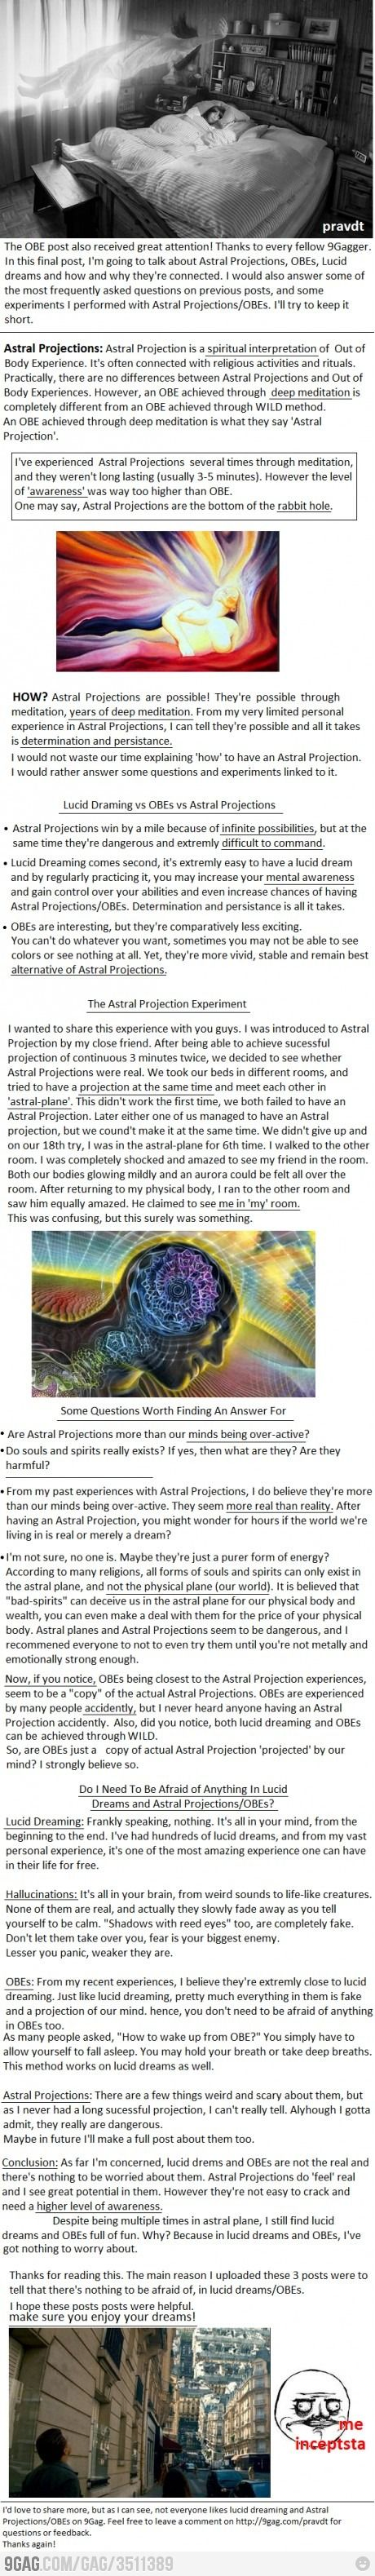 Astral Projections, Lucid Dreams ....Click www.techniquesforastralprojection.com for ideas, tips, techniques and info on #AstralProjection and #LucidDreaming